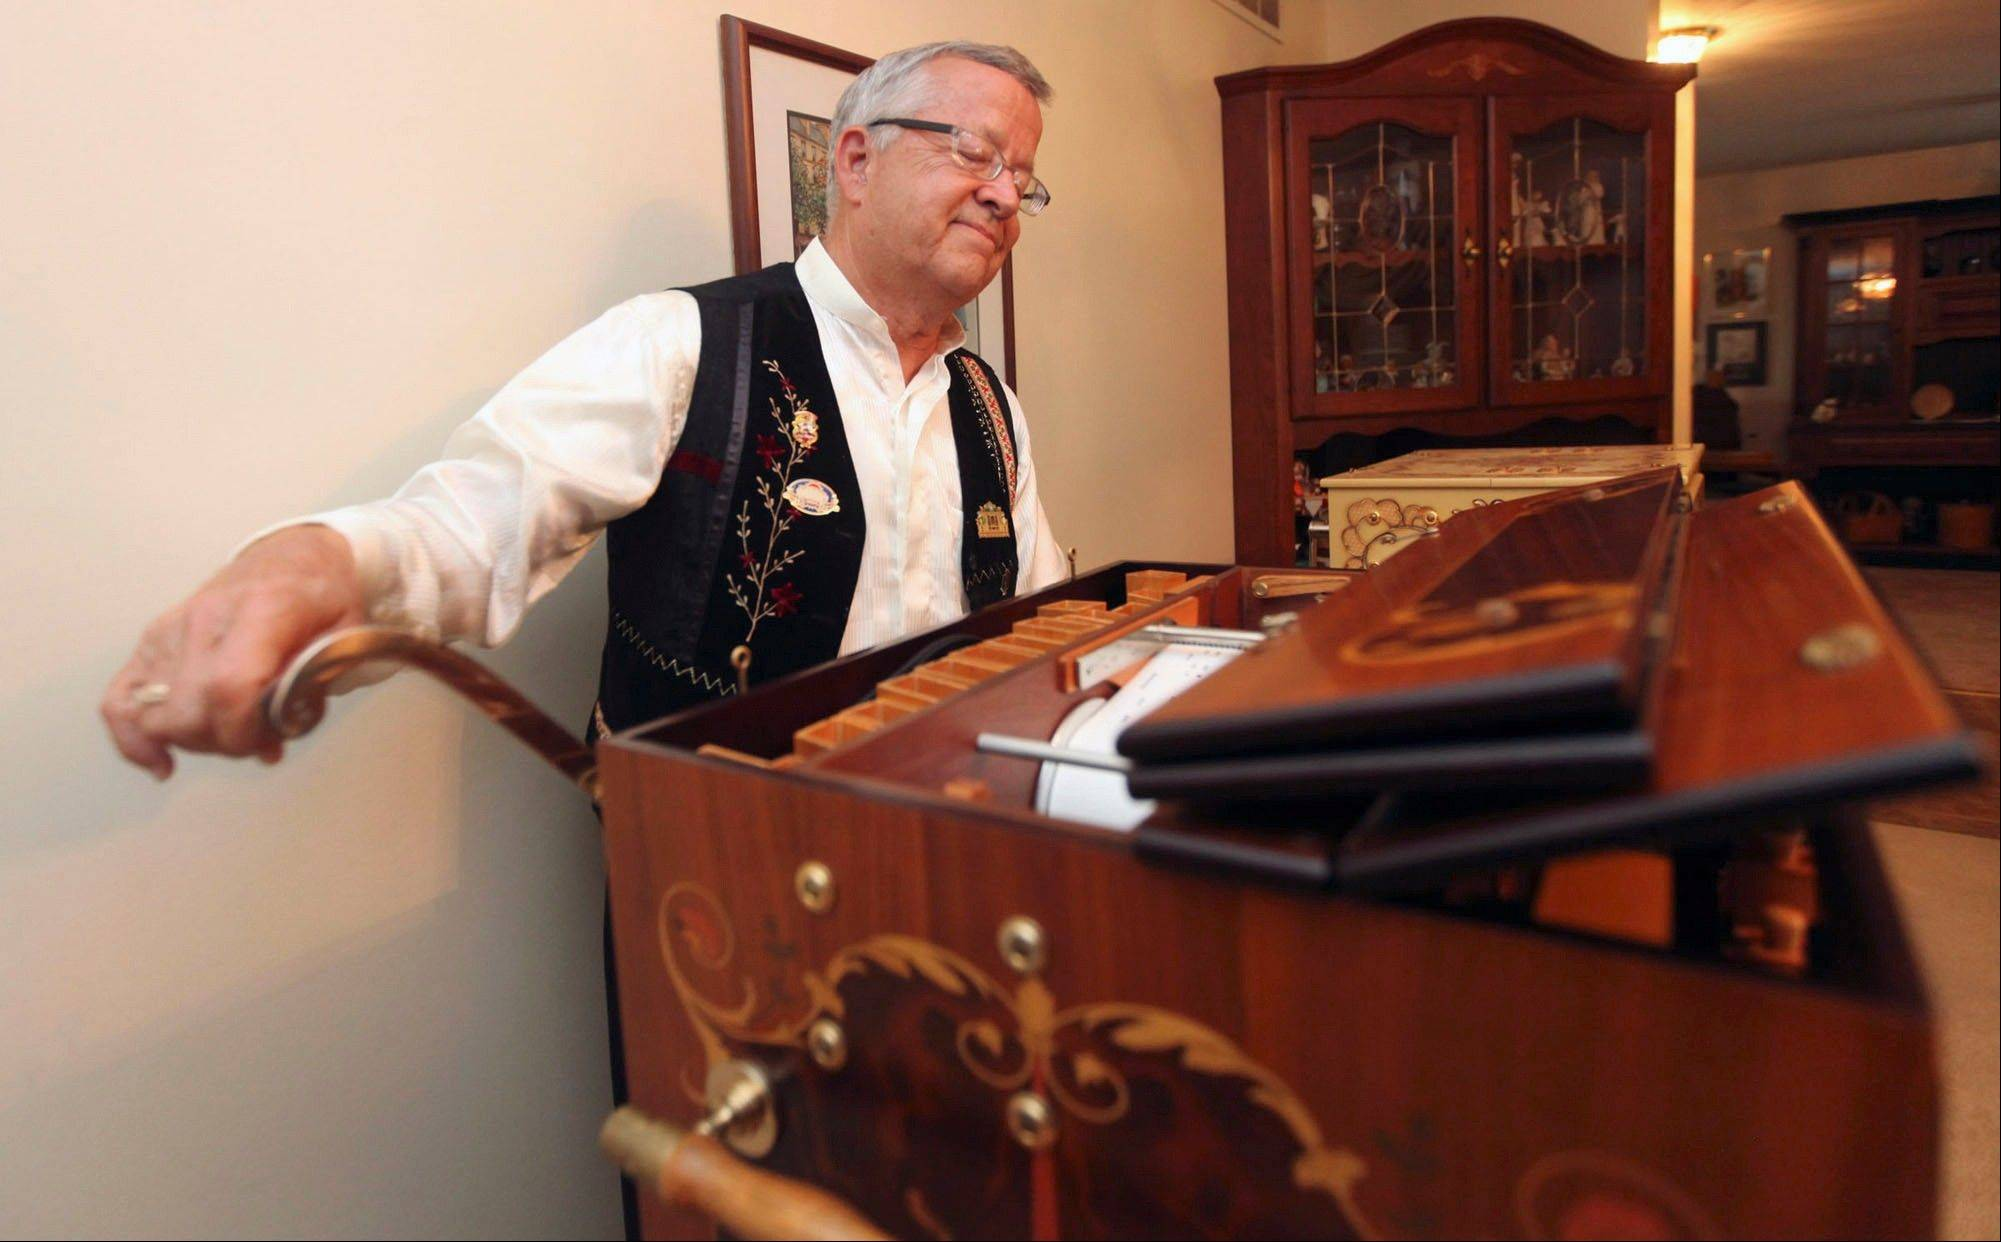 David Mahr closes his eyes and listens to the music from his Raffin street organ as he turns the crank at his home in Decatur, Ill. The organ was made in 2001 and has 124 pipes. Mahr, a member of the Carousel Organ Association of America and collector of hand-cranked street organs, nickelodeons, player pianos and all forms of mechanical music, has brought this organ with him to about 35 different festivals across the United States.